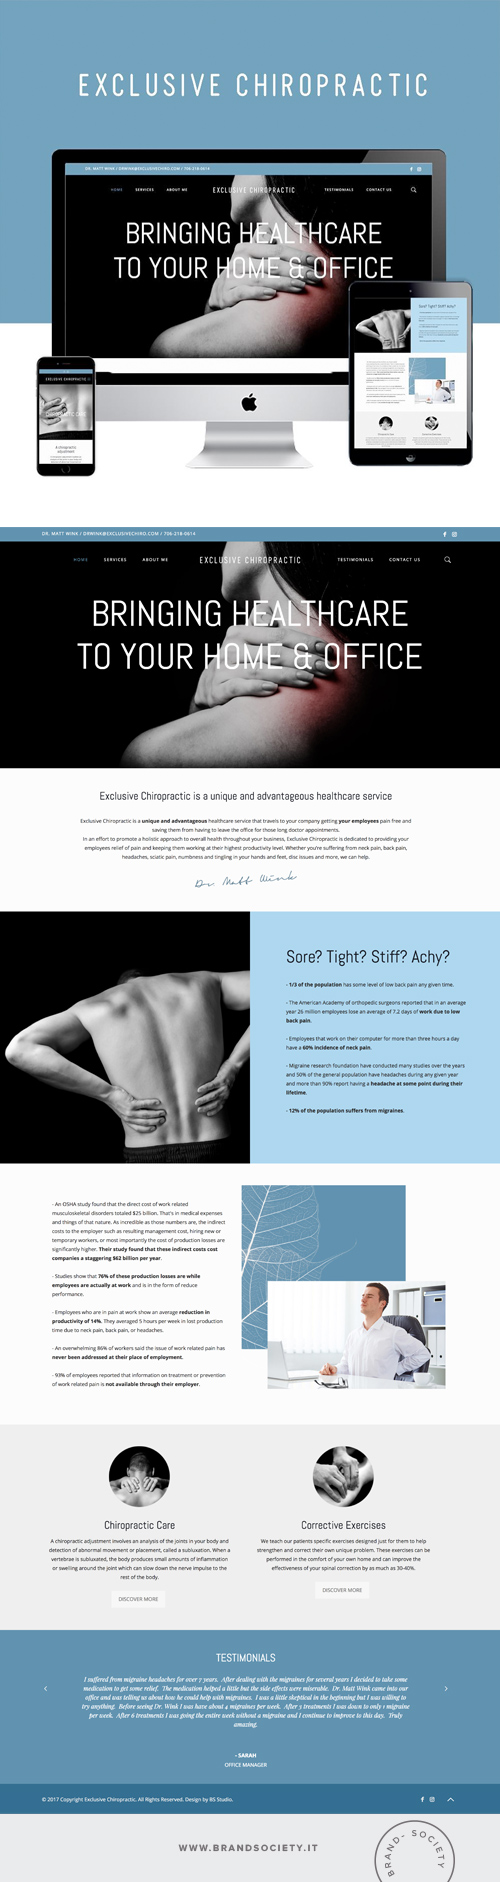 EXCLUSIVE CHIROPRACTIC    SERVICES  || WORDPRESS WEBSITE | BRANDING | PORTFOLIO DESIGN | COLOR PALETTE